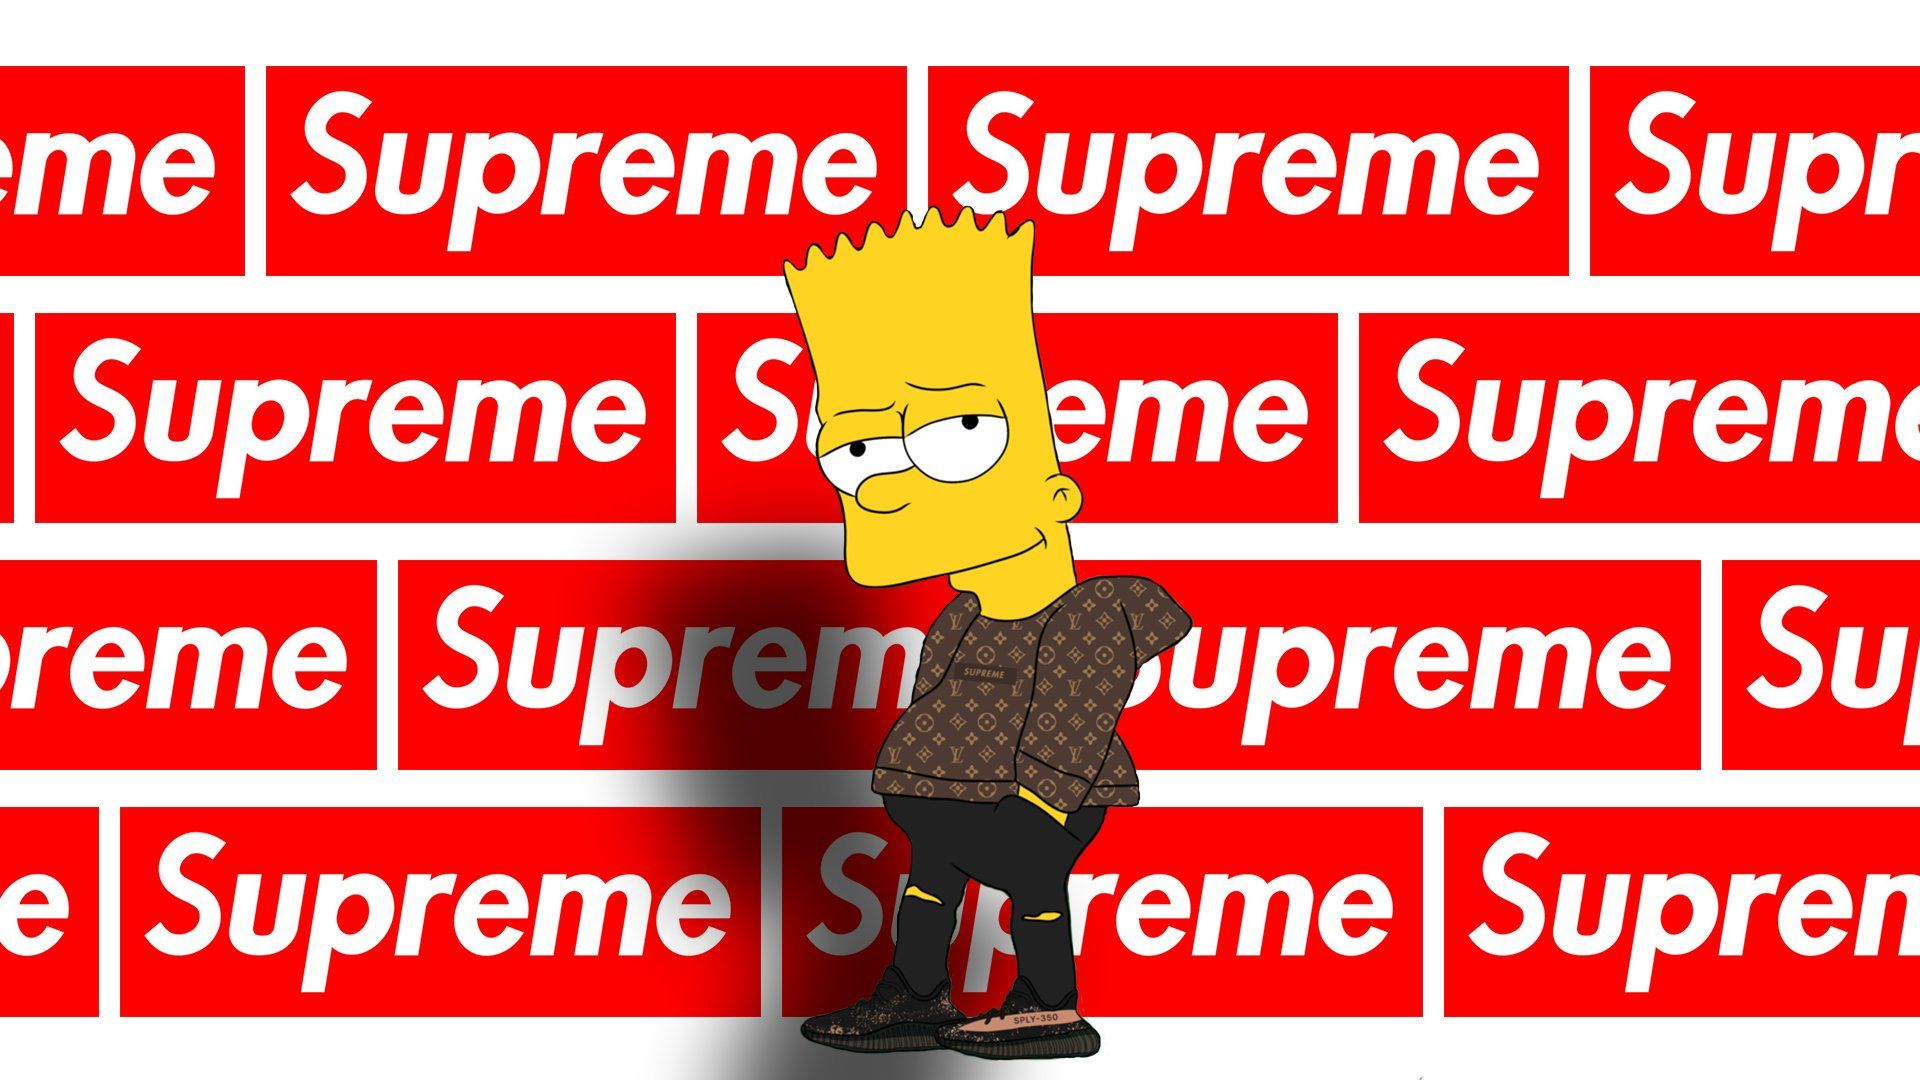 Supreme Wallpapers   Top Supreme Backgrounds   WallpaperAccess 1920x1080